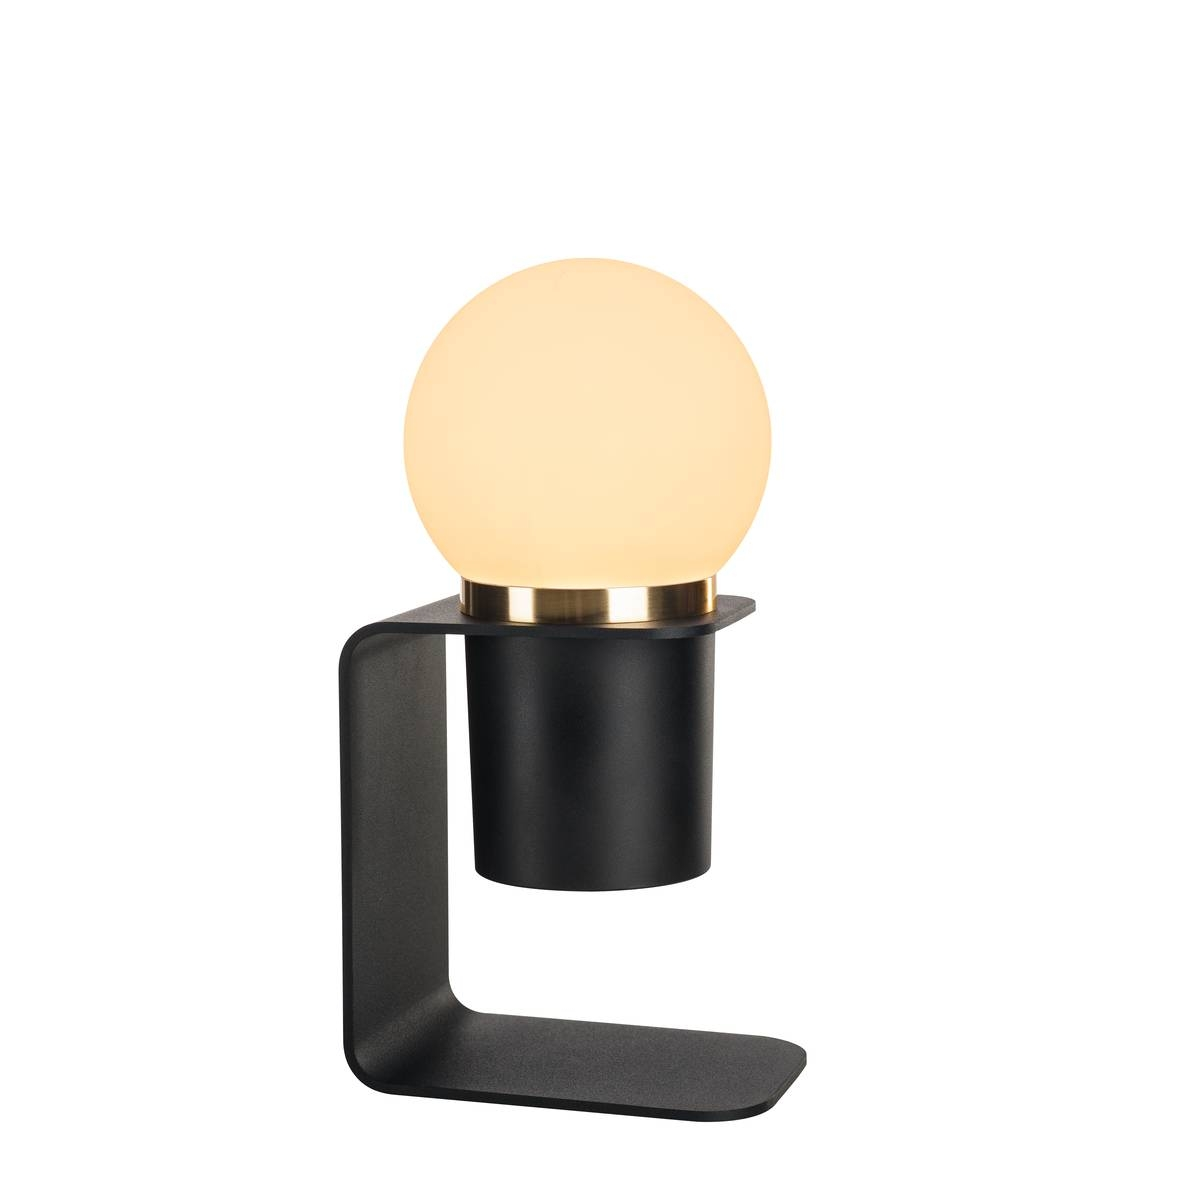 SLV Tonila TL USB Bordslampa